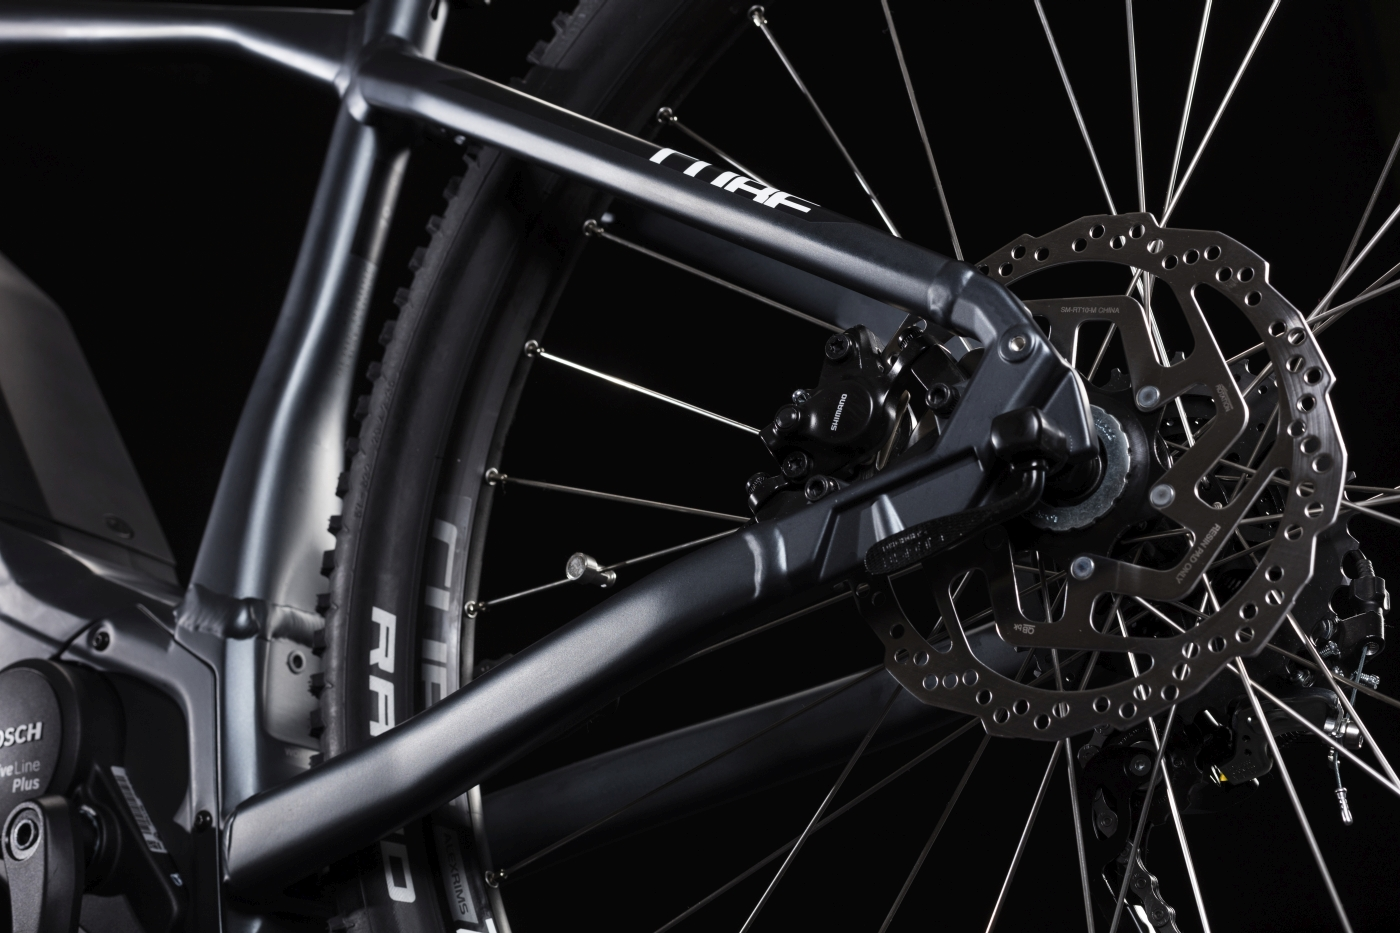 7577ae295c3 The Acid Hybrid ONE combines the go-anywhere rugged appeal of our mountain  bikes with the comfort and adaptability of our touring bikes. Cube